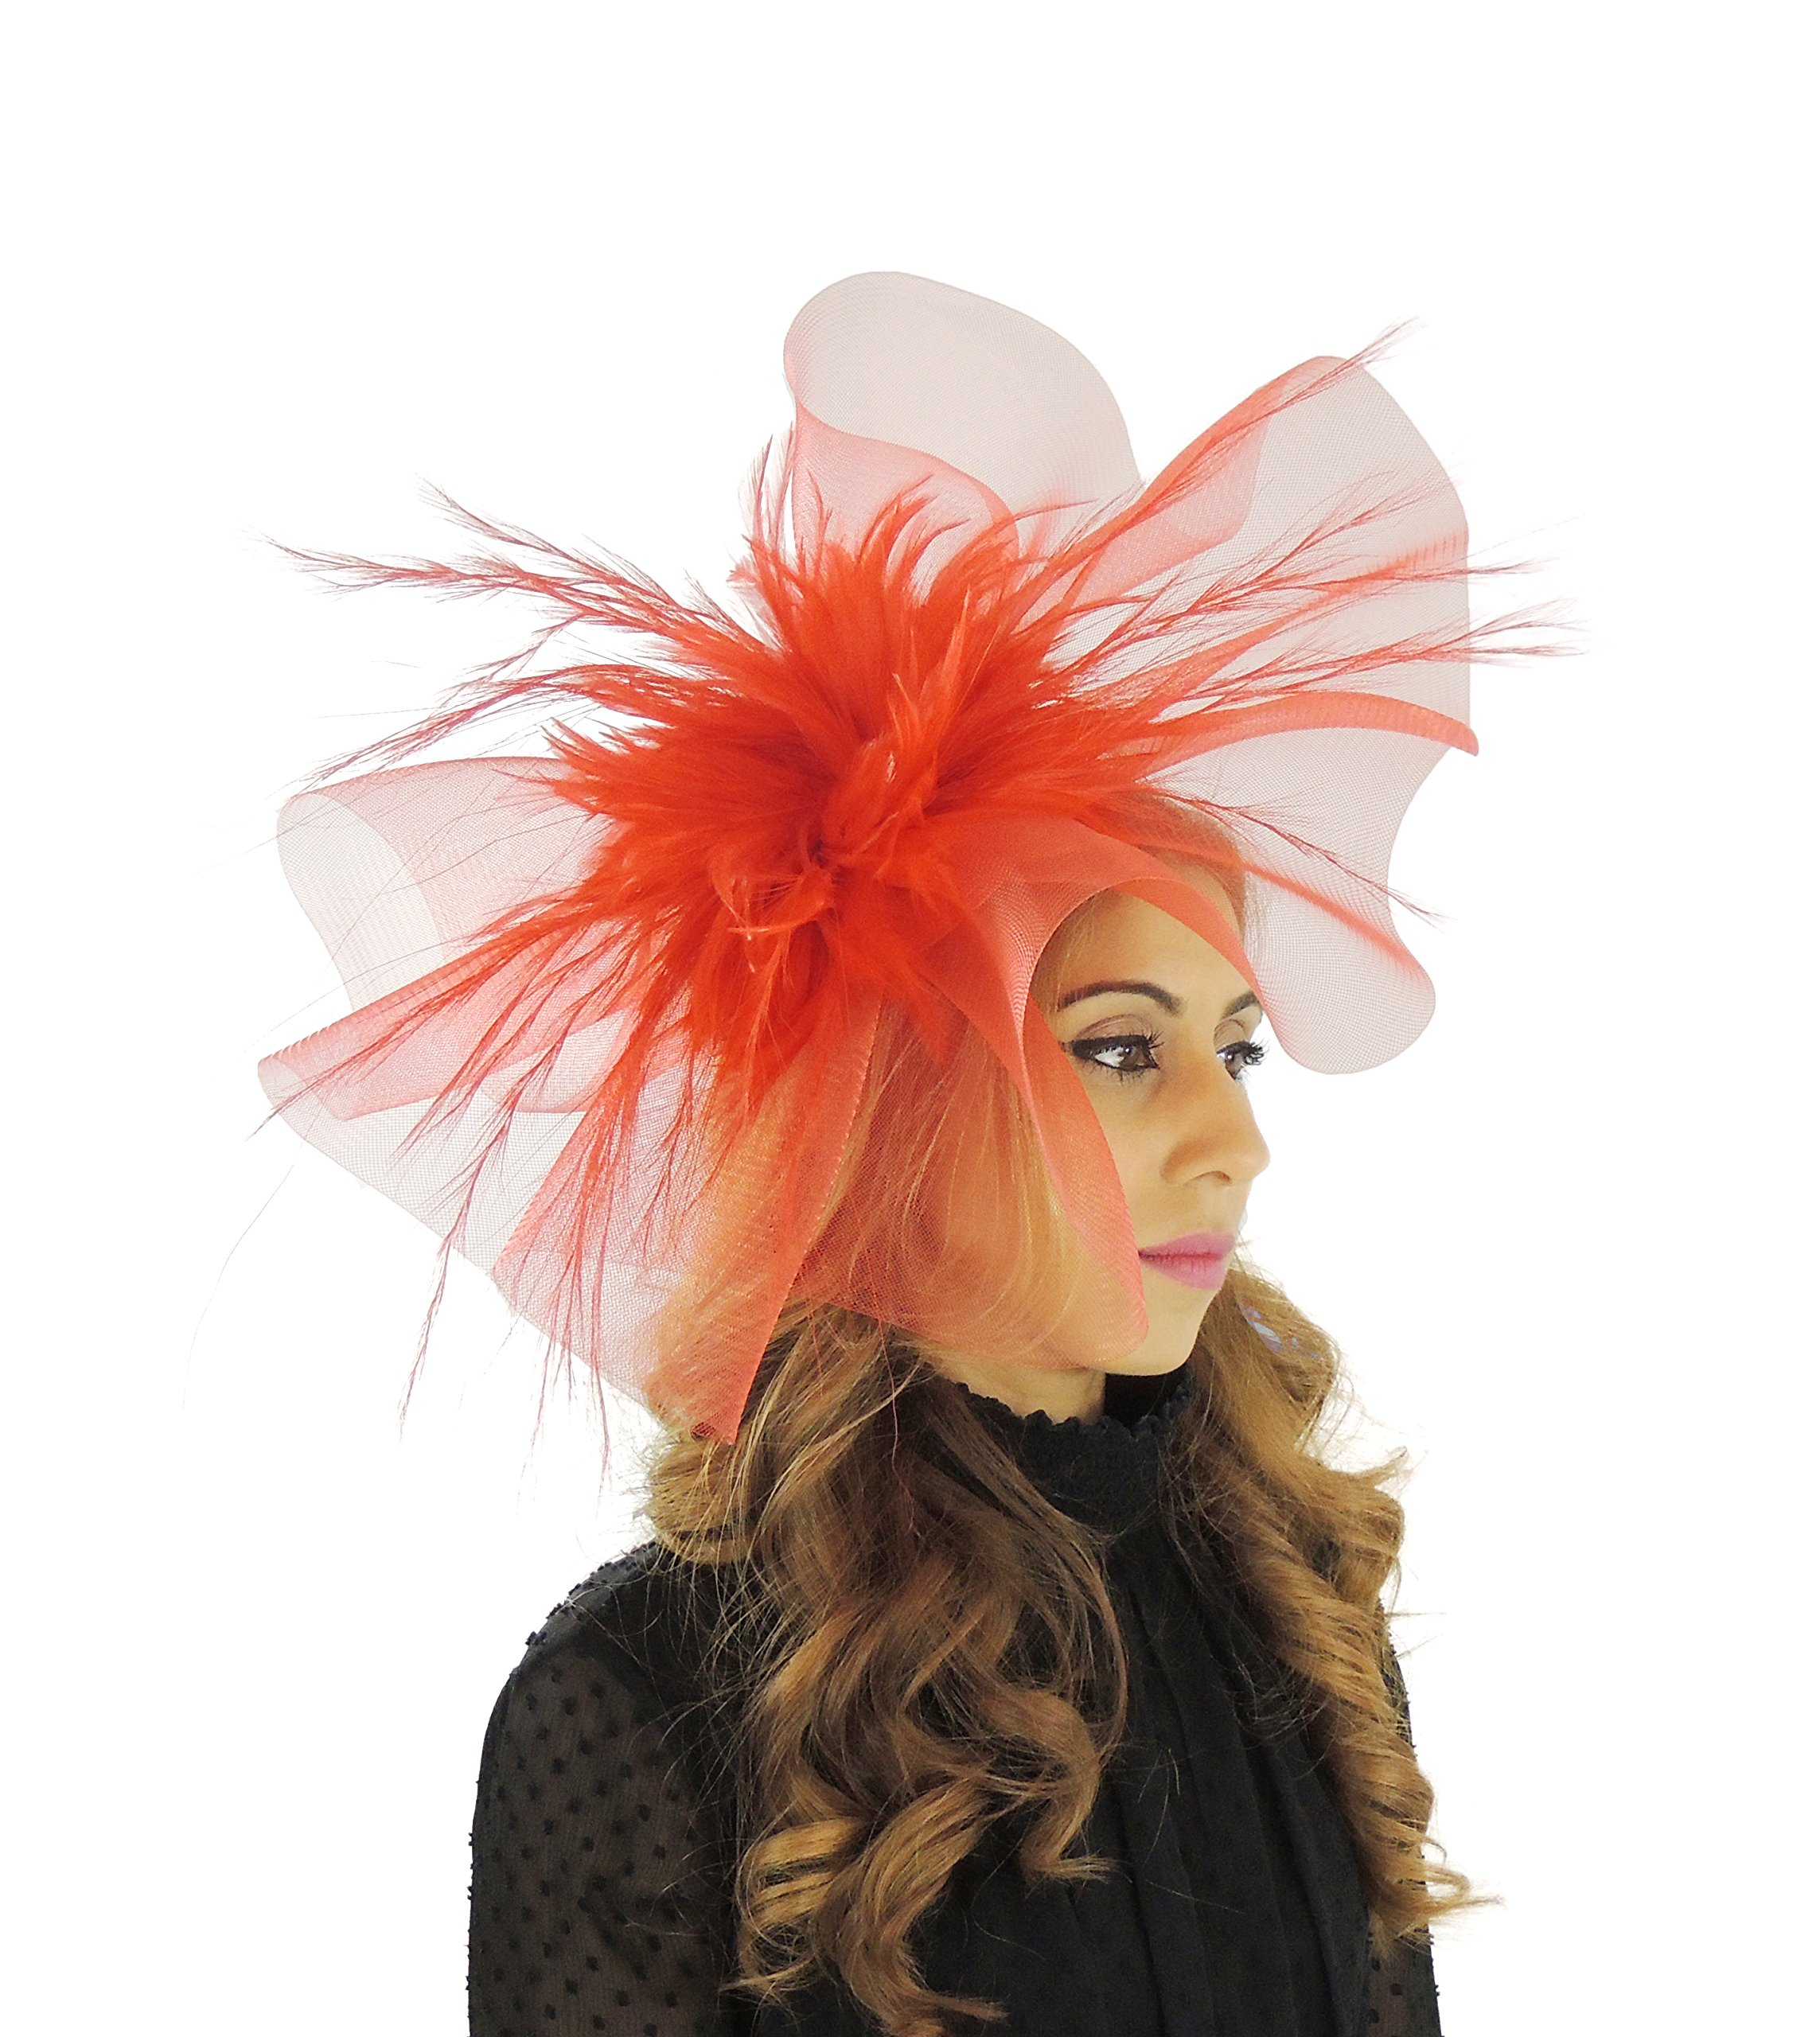 Hats By Cressida crin & Feathers Elegant Ladies Ascot Wedding Fascinator Hat Red